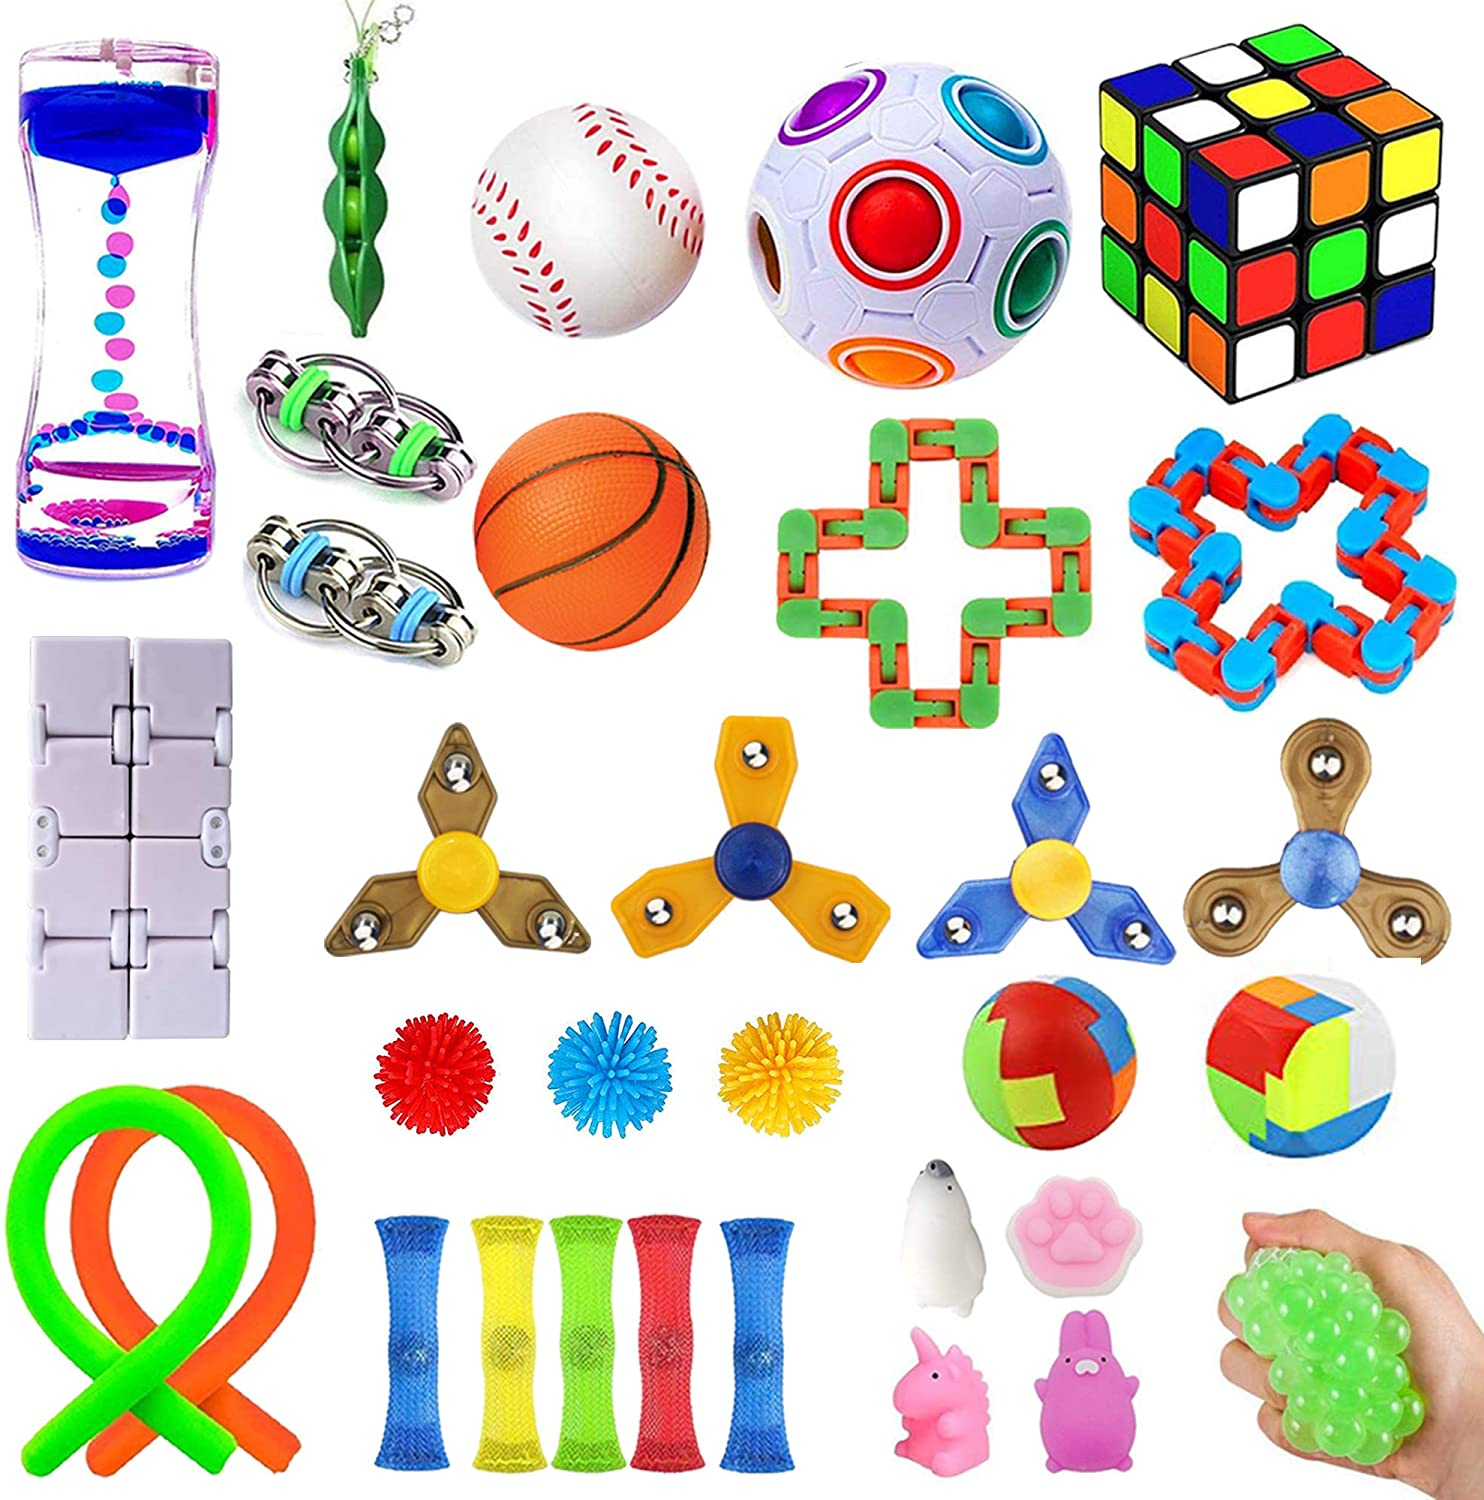 Fidget Sensory Toy Silicone Autism Special Needs Stress Relief Toy Fidget Pack Sensory Toys Novelty Gifts for Girls Boys Kids Strawberry